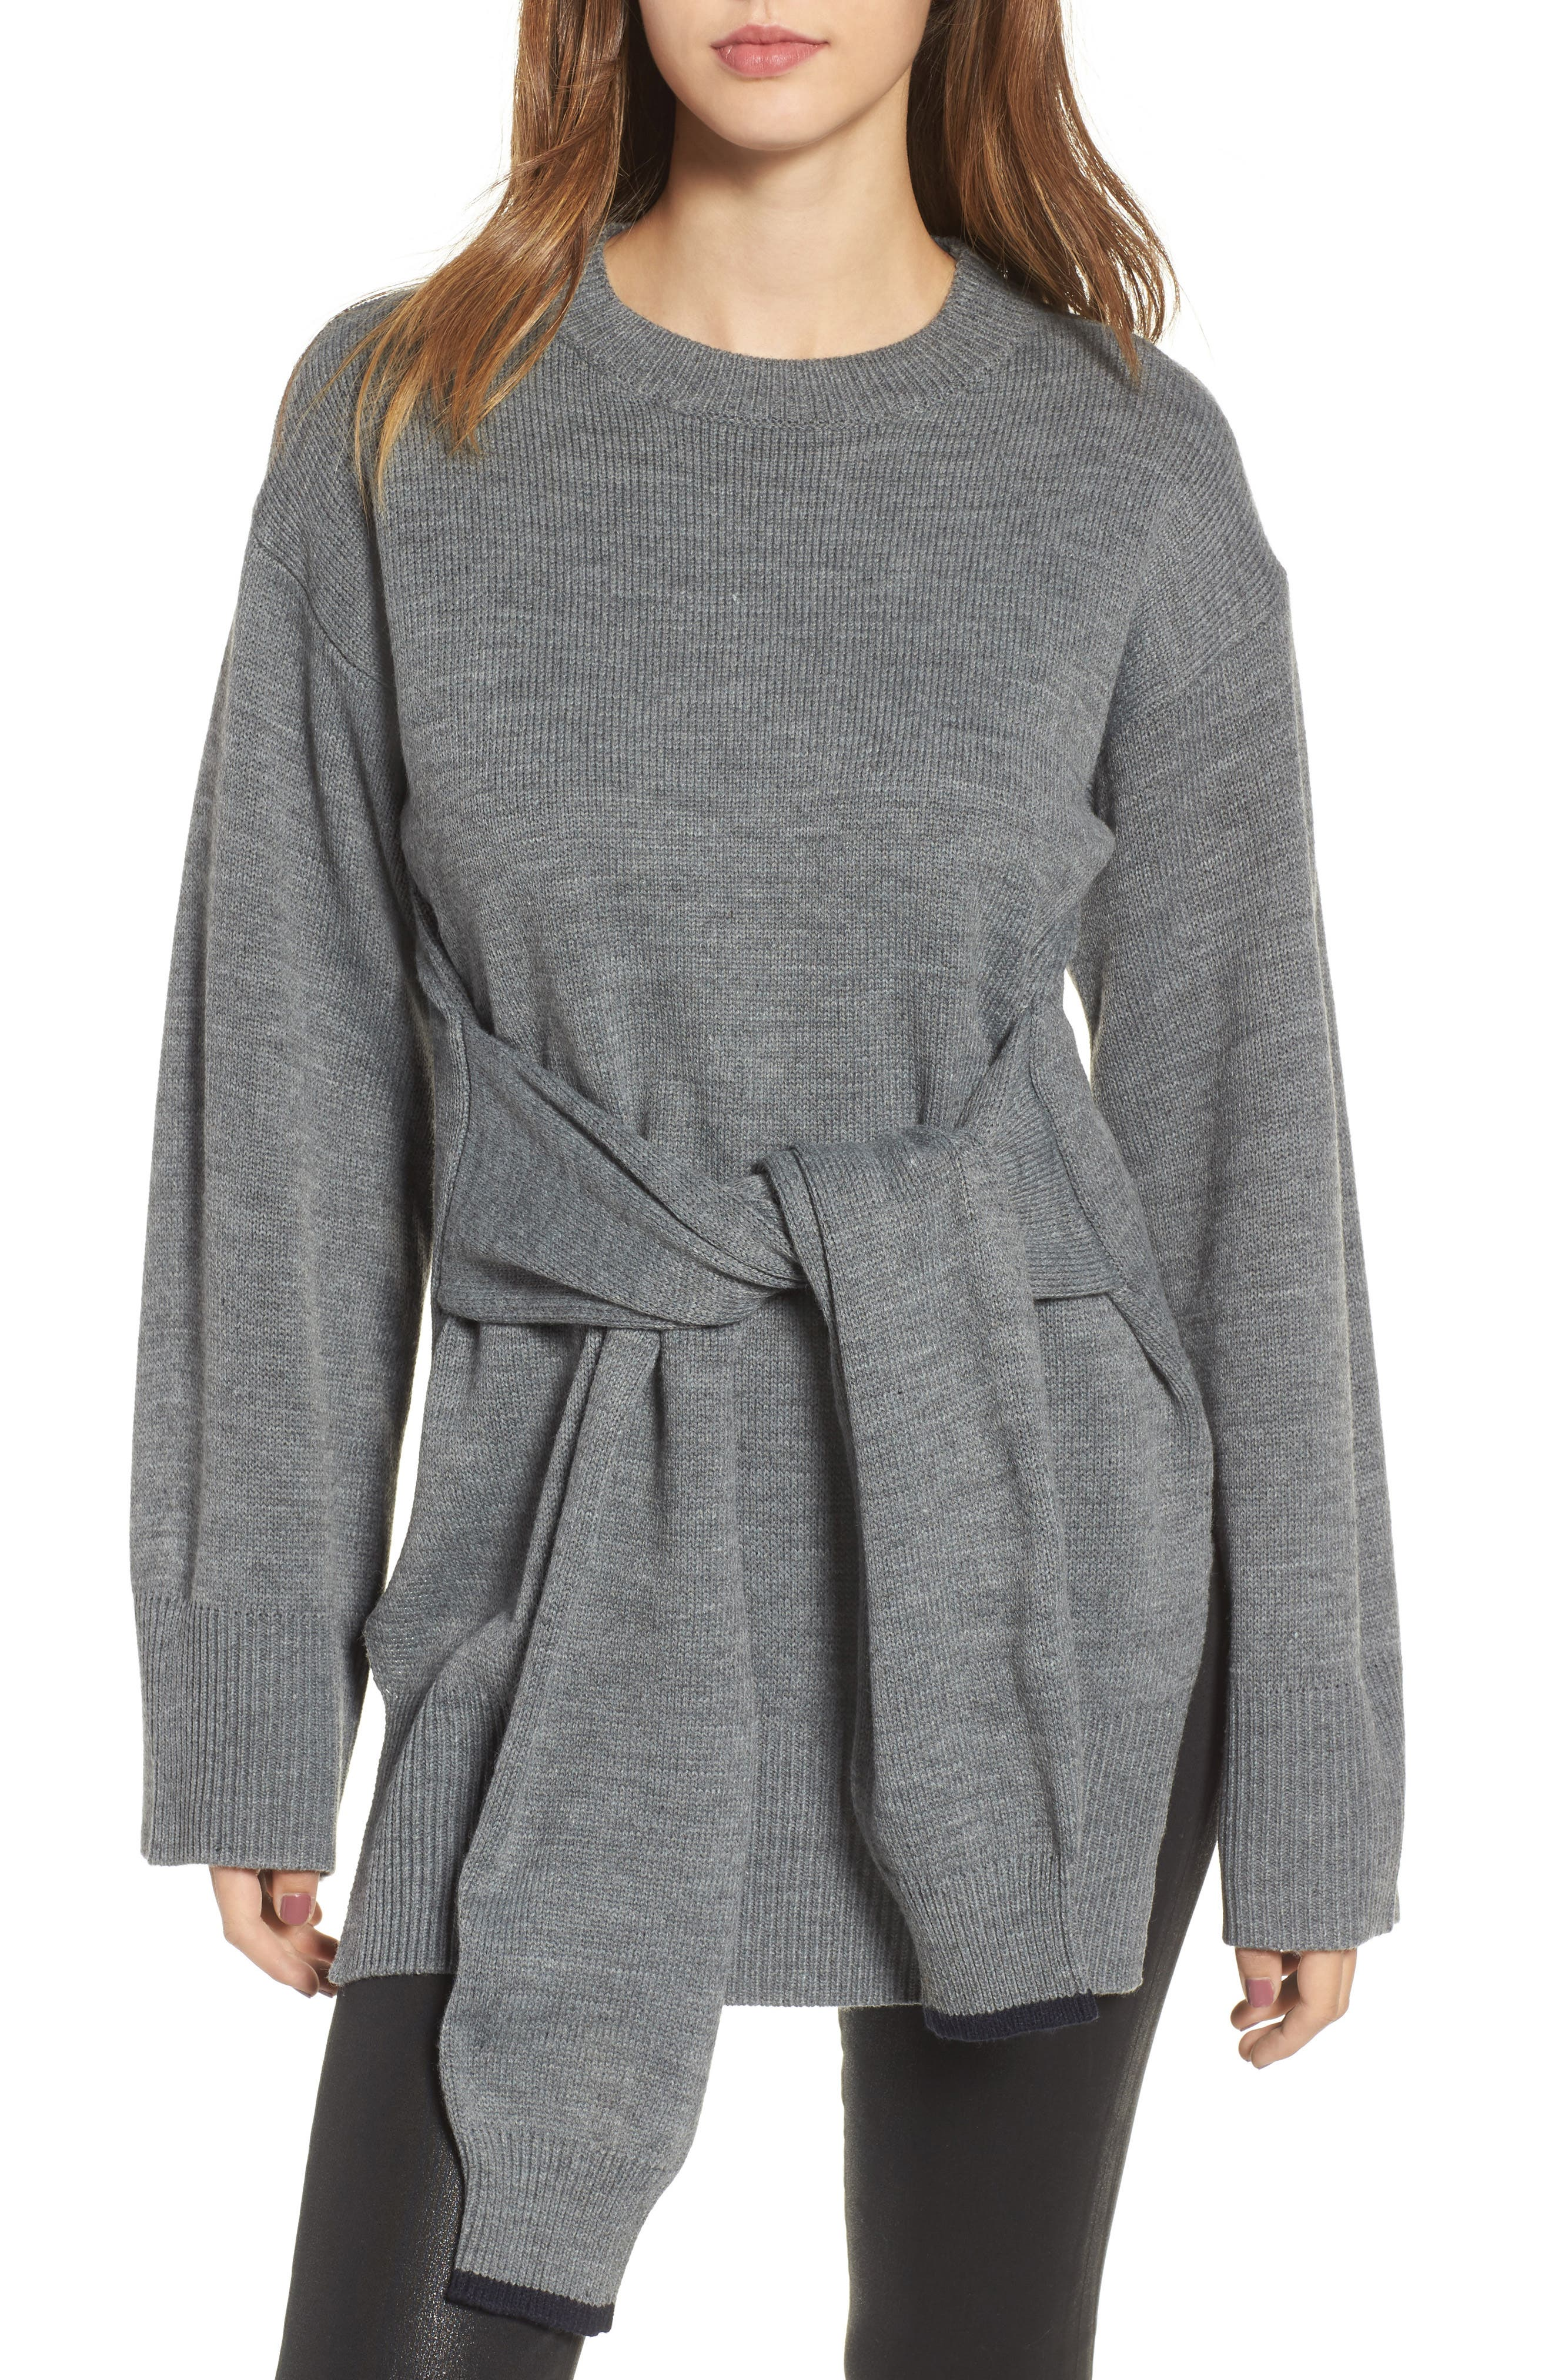 J.O.A. Tie Front Sweater